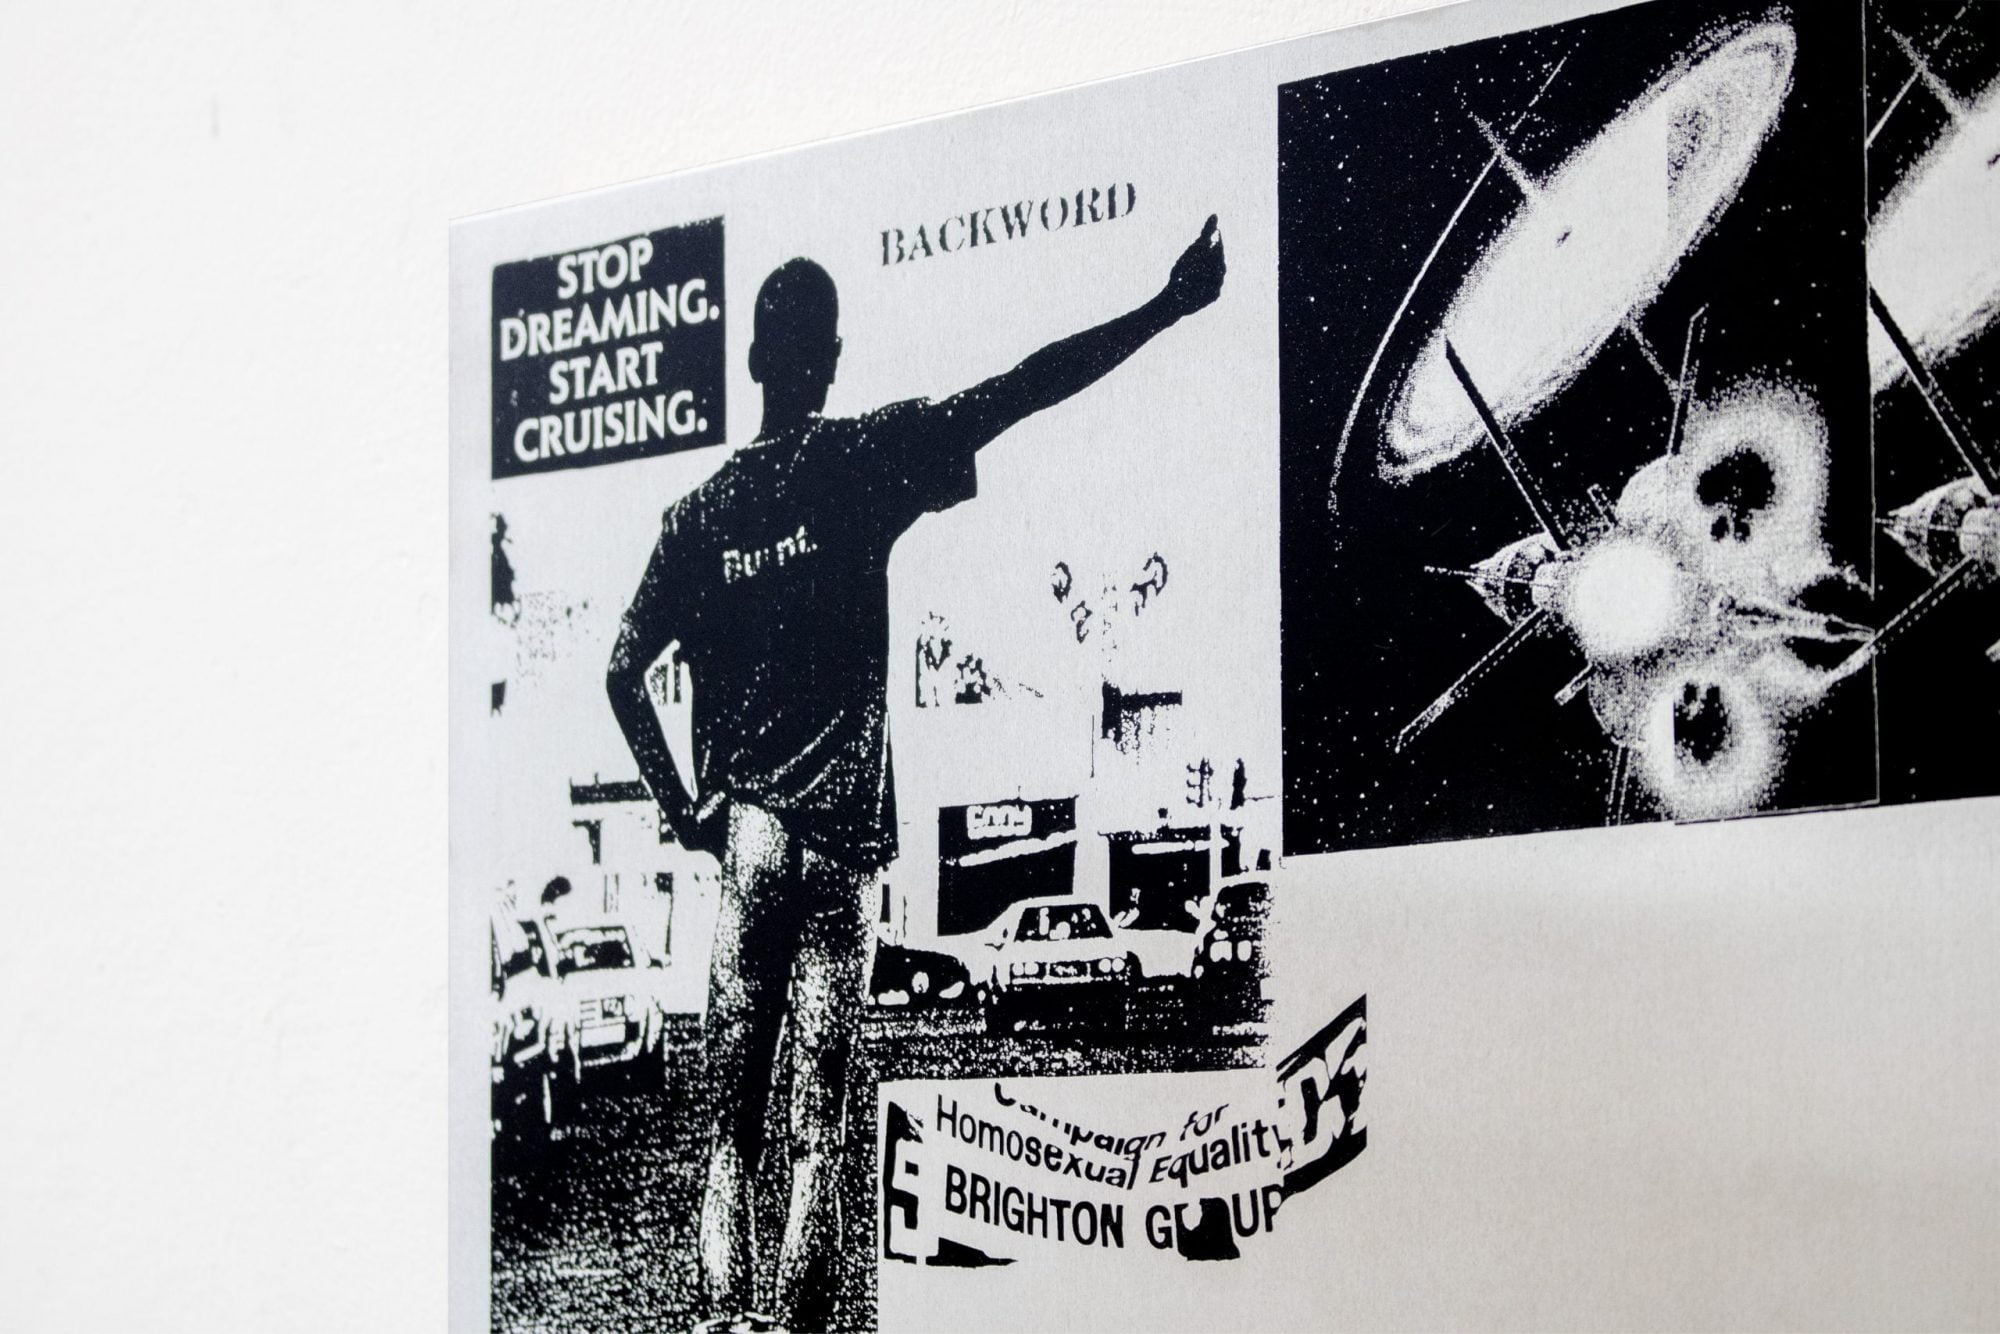 """Detail of the main Periploi image. On a white background, a light metallic surface viewed from an angle contains black and white printed images. The words """"Stop Dreaming. Start Cruising."""" , """"Backword"""" and """"Campaign for Homosexual Equality Brighton Group"""" can be read along the top and bottom. A male figure stands facing away with their trousers round their ankles, thumbing a lift. To the right is a pixelated image of a space satellite against a faraway galaxy."""